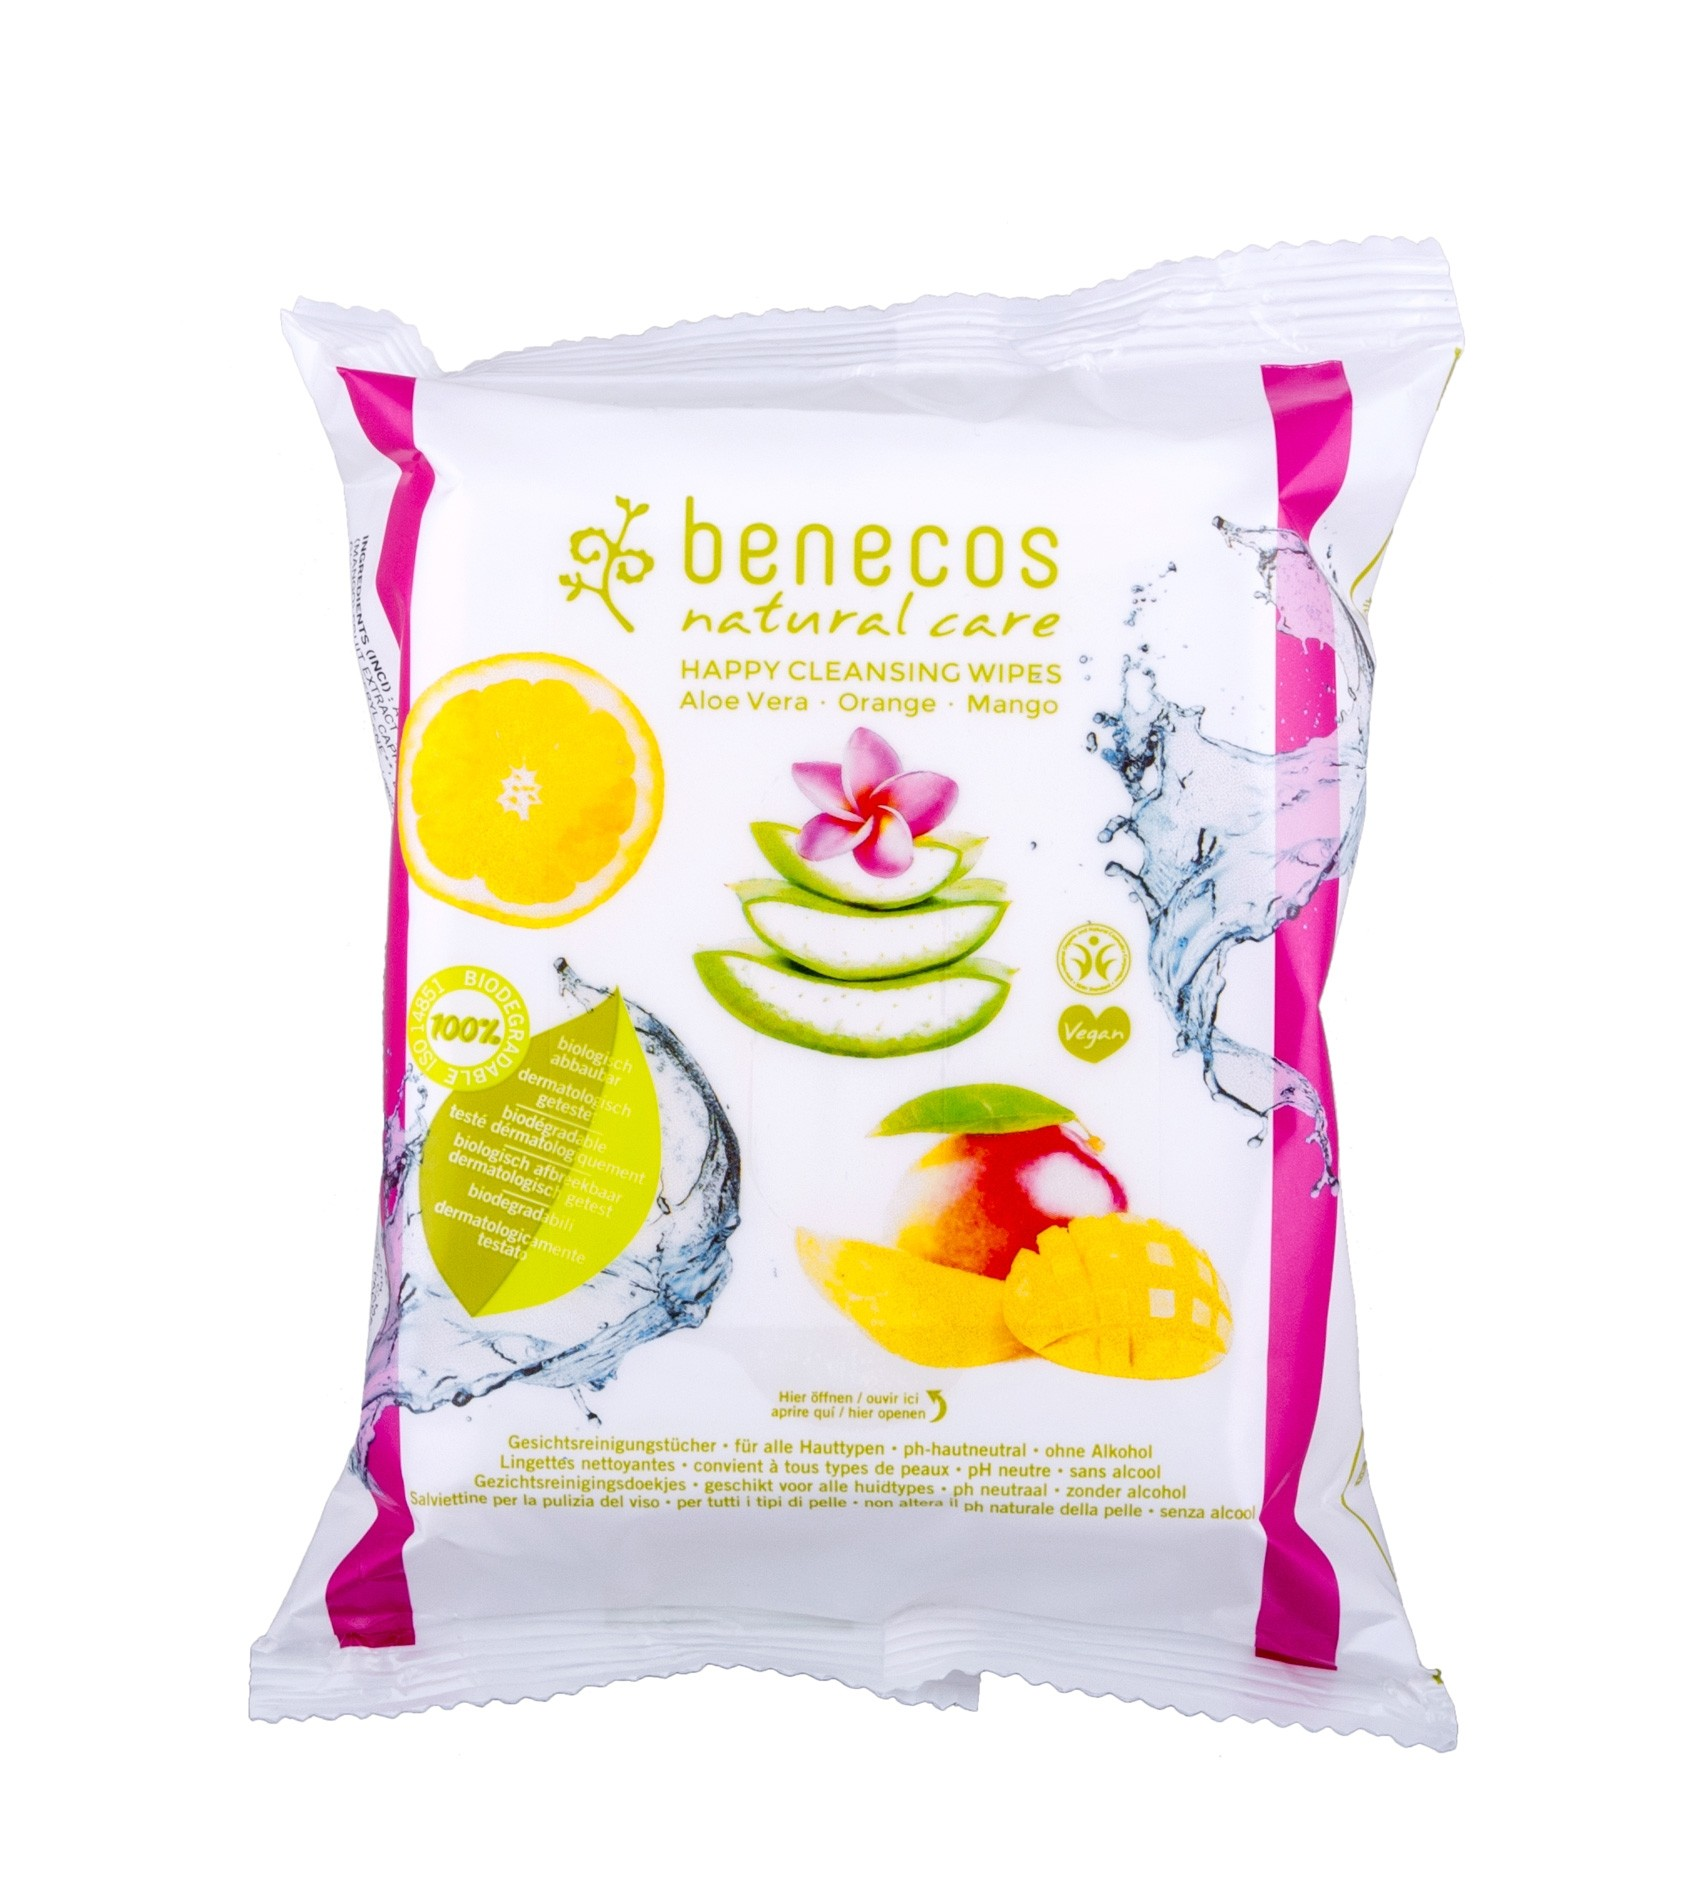 Benecos Natural Care Happy Cleansing Wipes